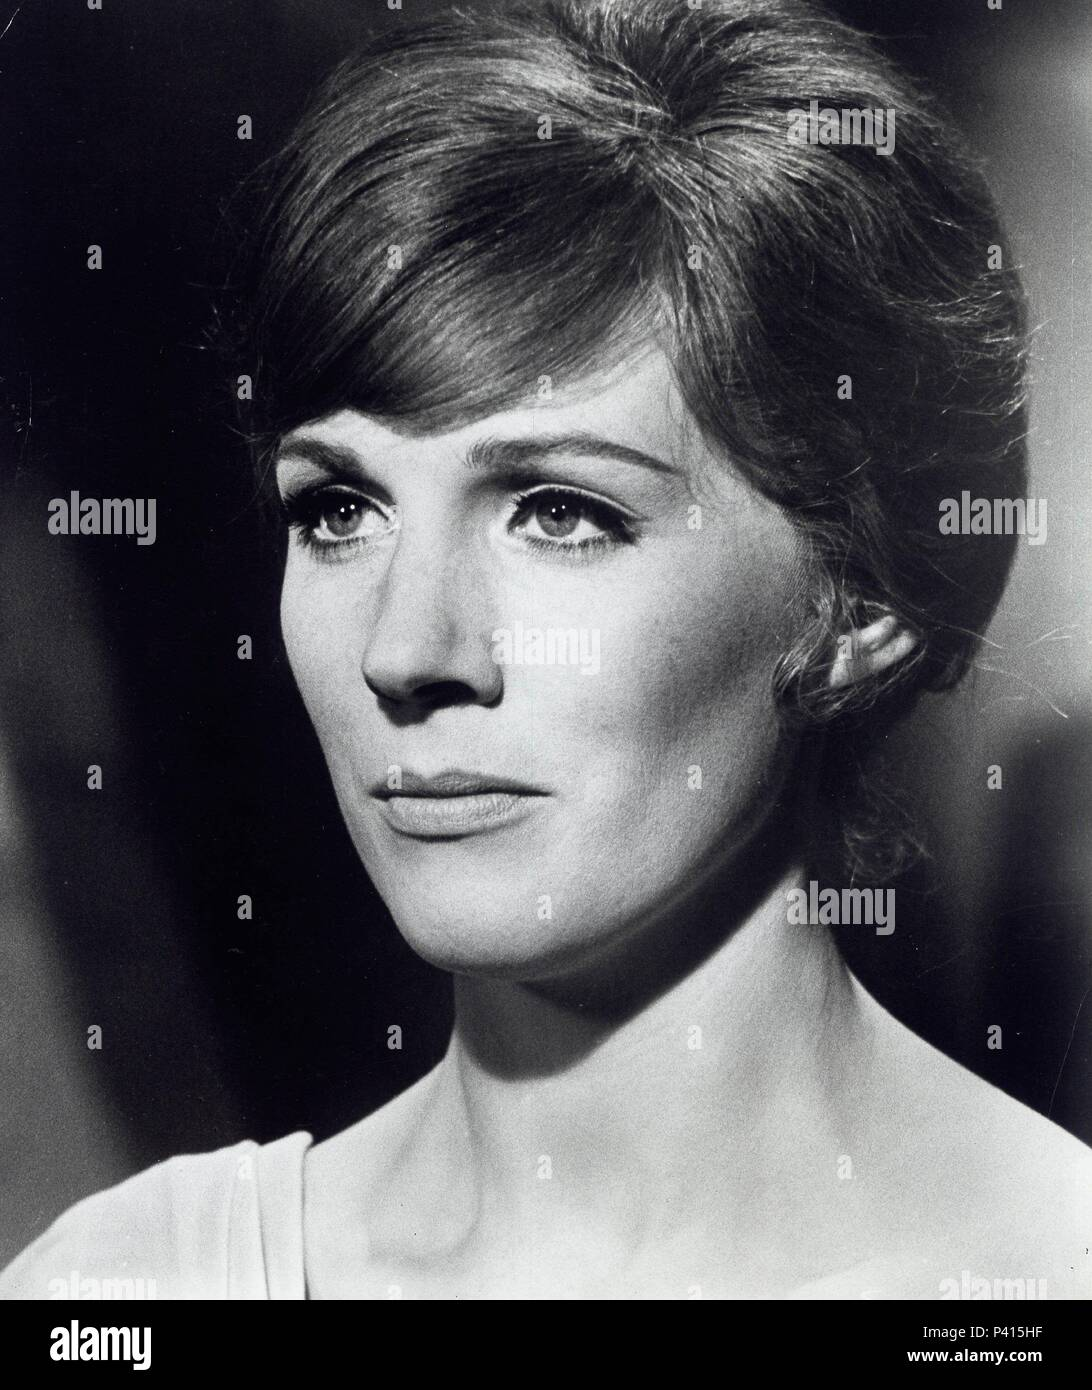 Original Film Title: DARLING LILI.  English Title: DARLING LILI.  Film Director: BLAKE EDWARDS.  Year: 1970.  Stars: JULIE ANDREWS. Credit: PARAMOUNT PICTURES / Album - Stock Image